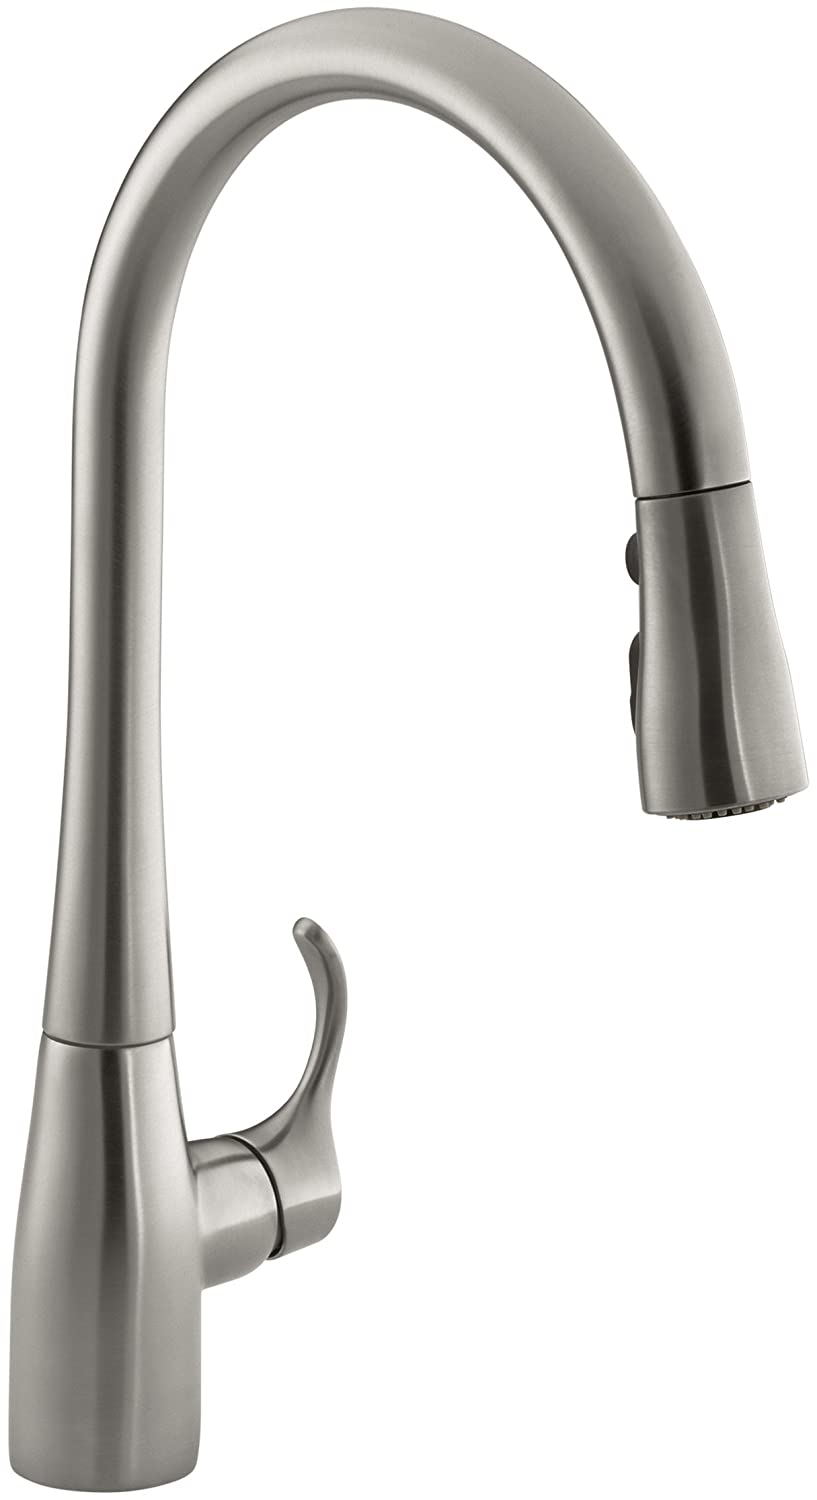 Pull-Down Kitchen Faucet With Magnetic Sprayer Dock | Best Kitchen ...